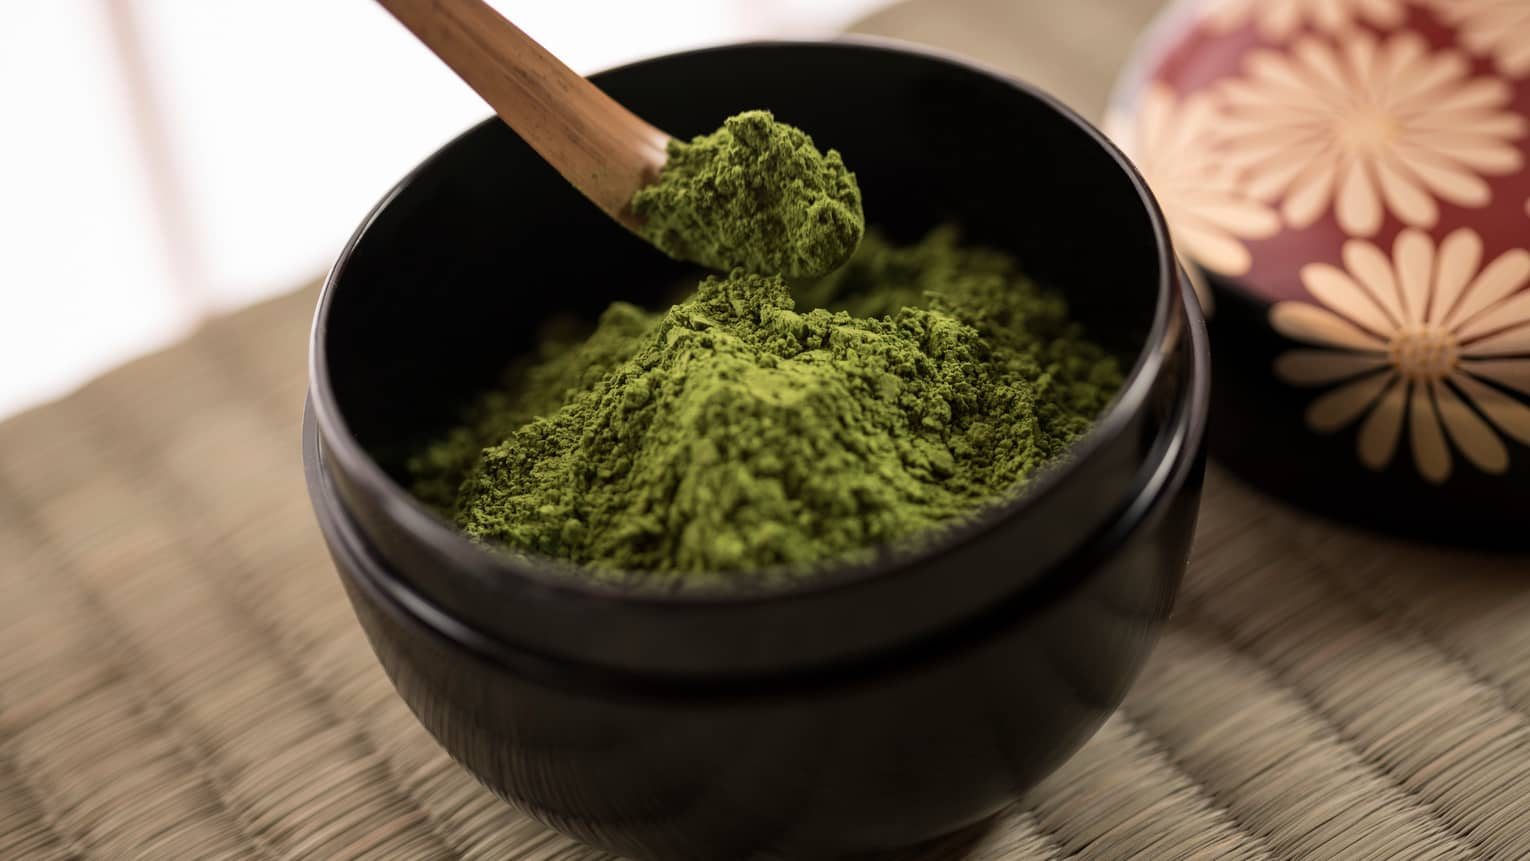 Close-up of green matcha tea powder in small black bowl, wood spoon